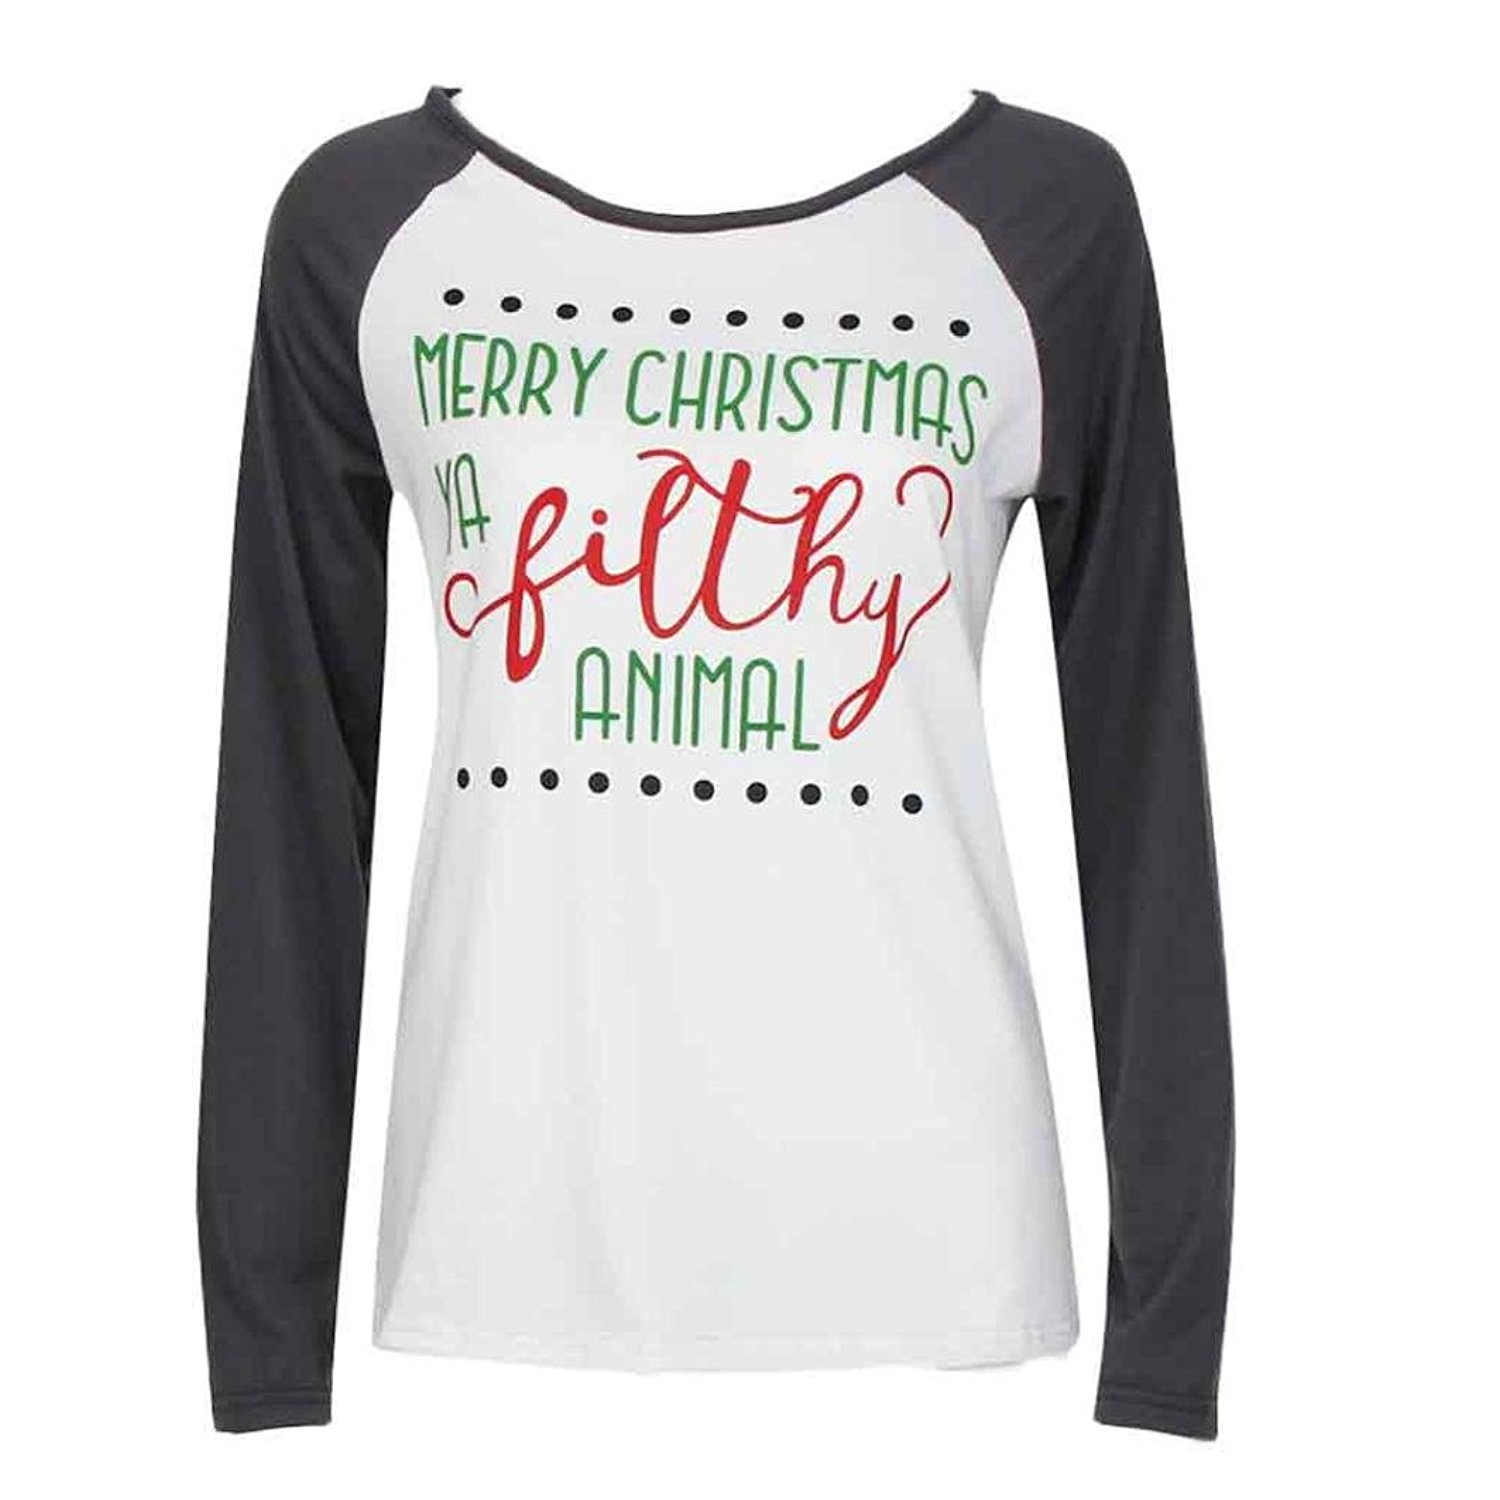 c8a4997cc207a Get Quotations · Tsmile Women Blouse Clearance Xmas Long Sleeve Merry  Christmas Letter Printed Round Neck T-Shirt